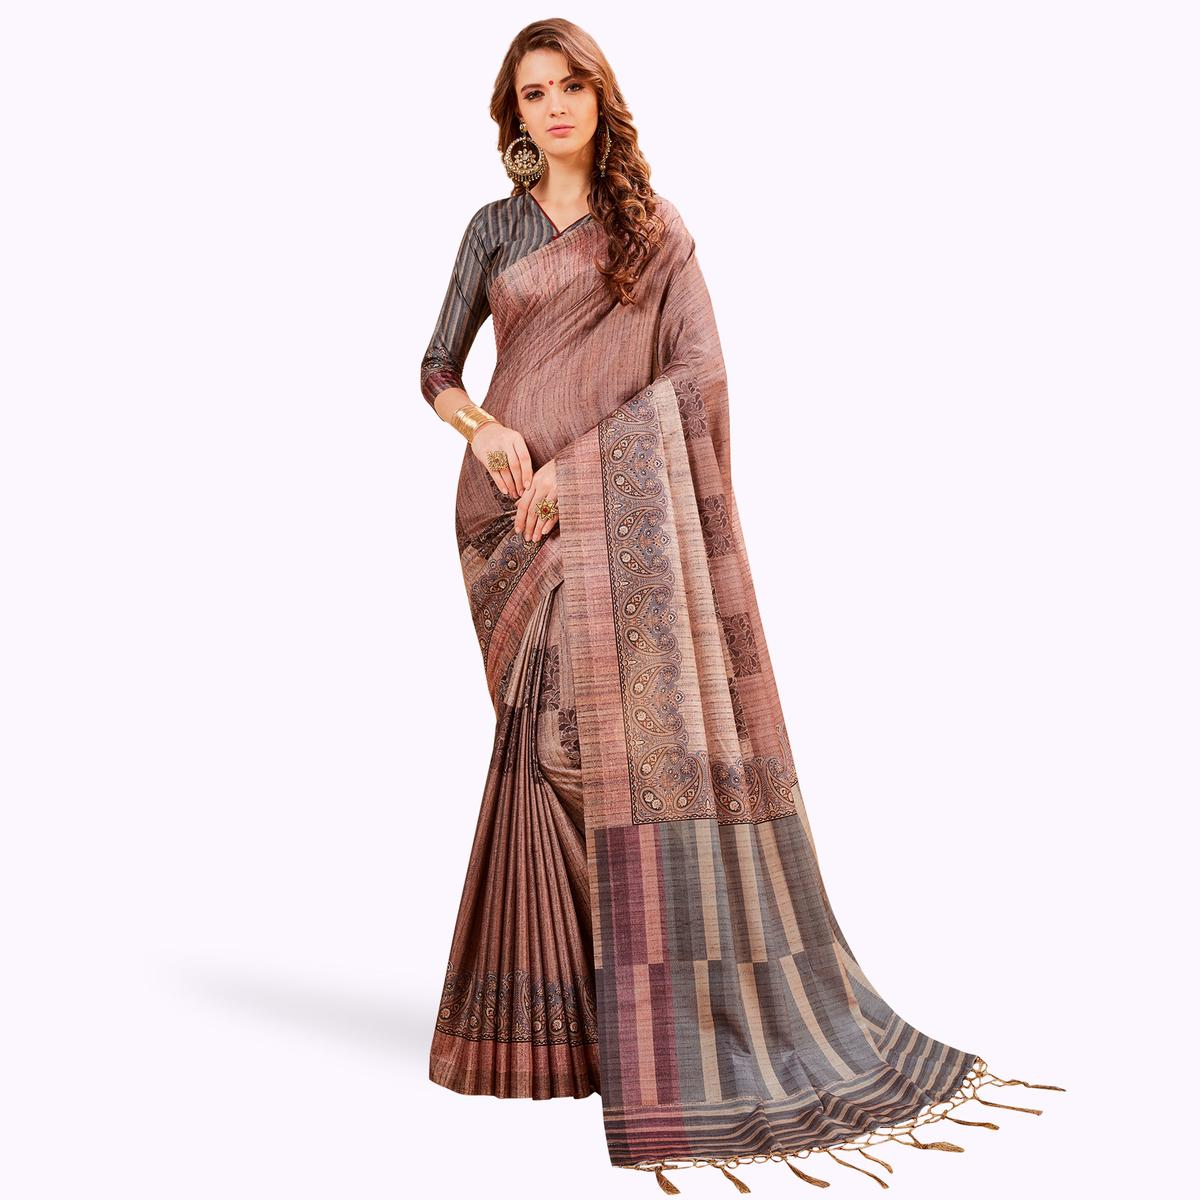 Radiant Mauve Colored Festive Wear Printed Manipuri Silk Saree